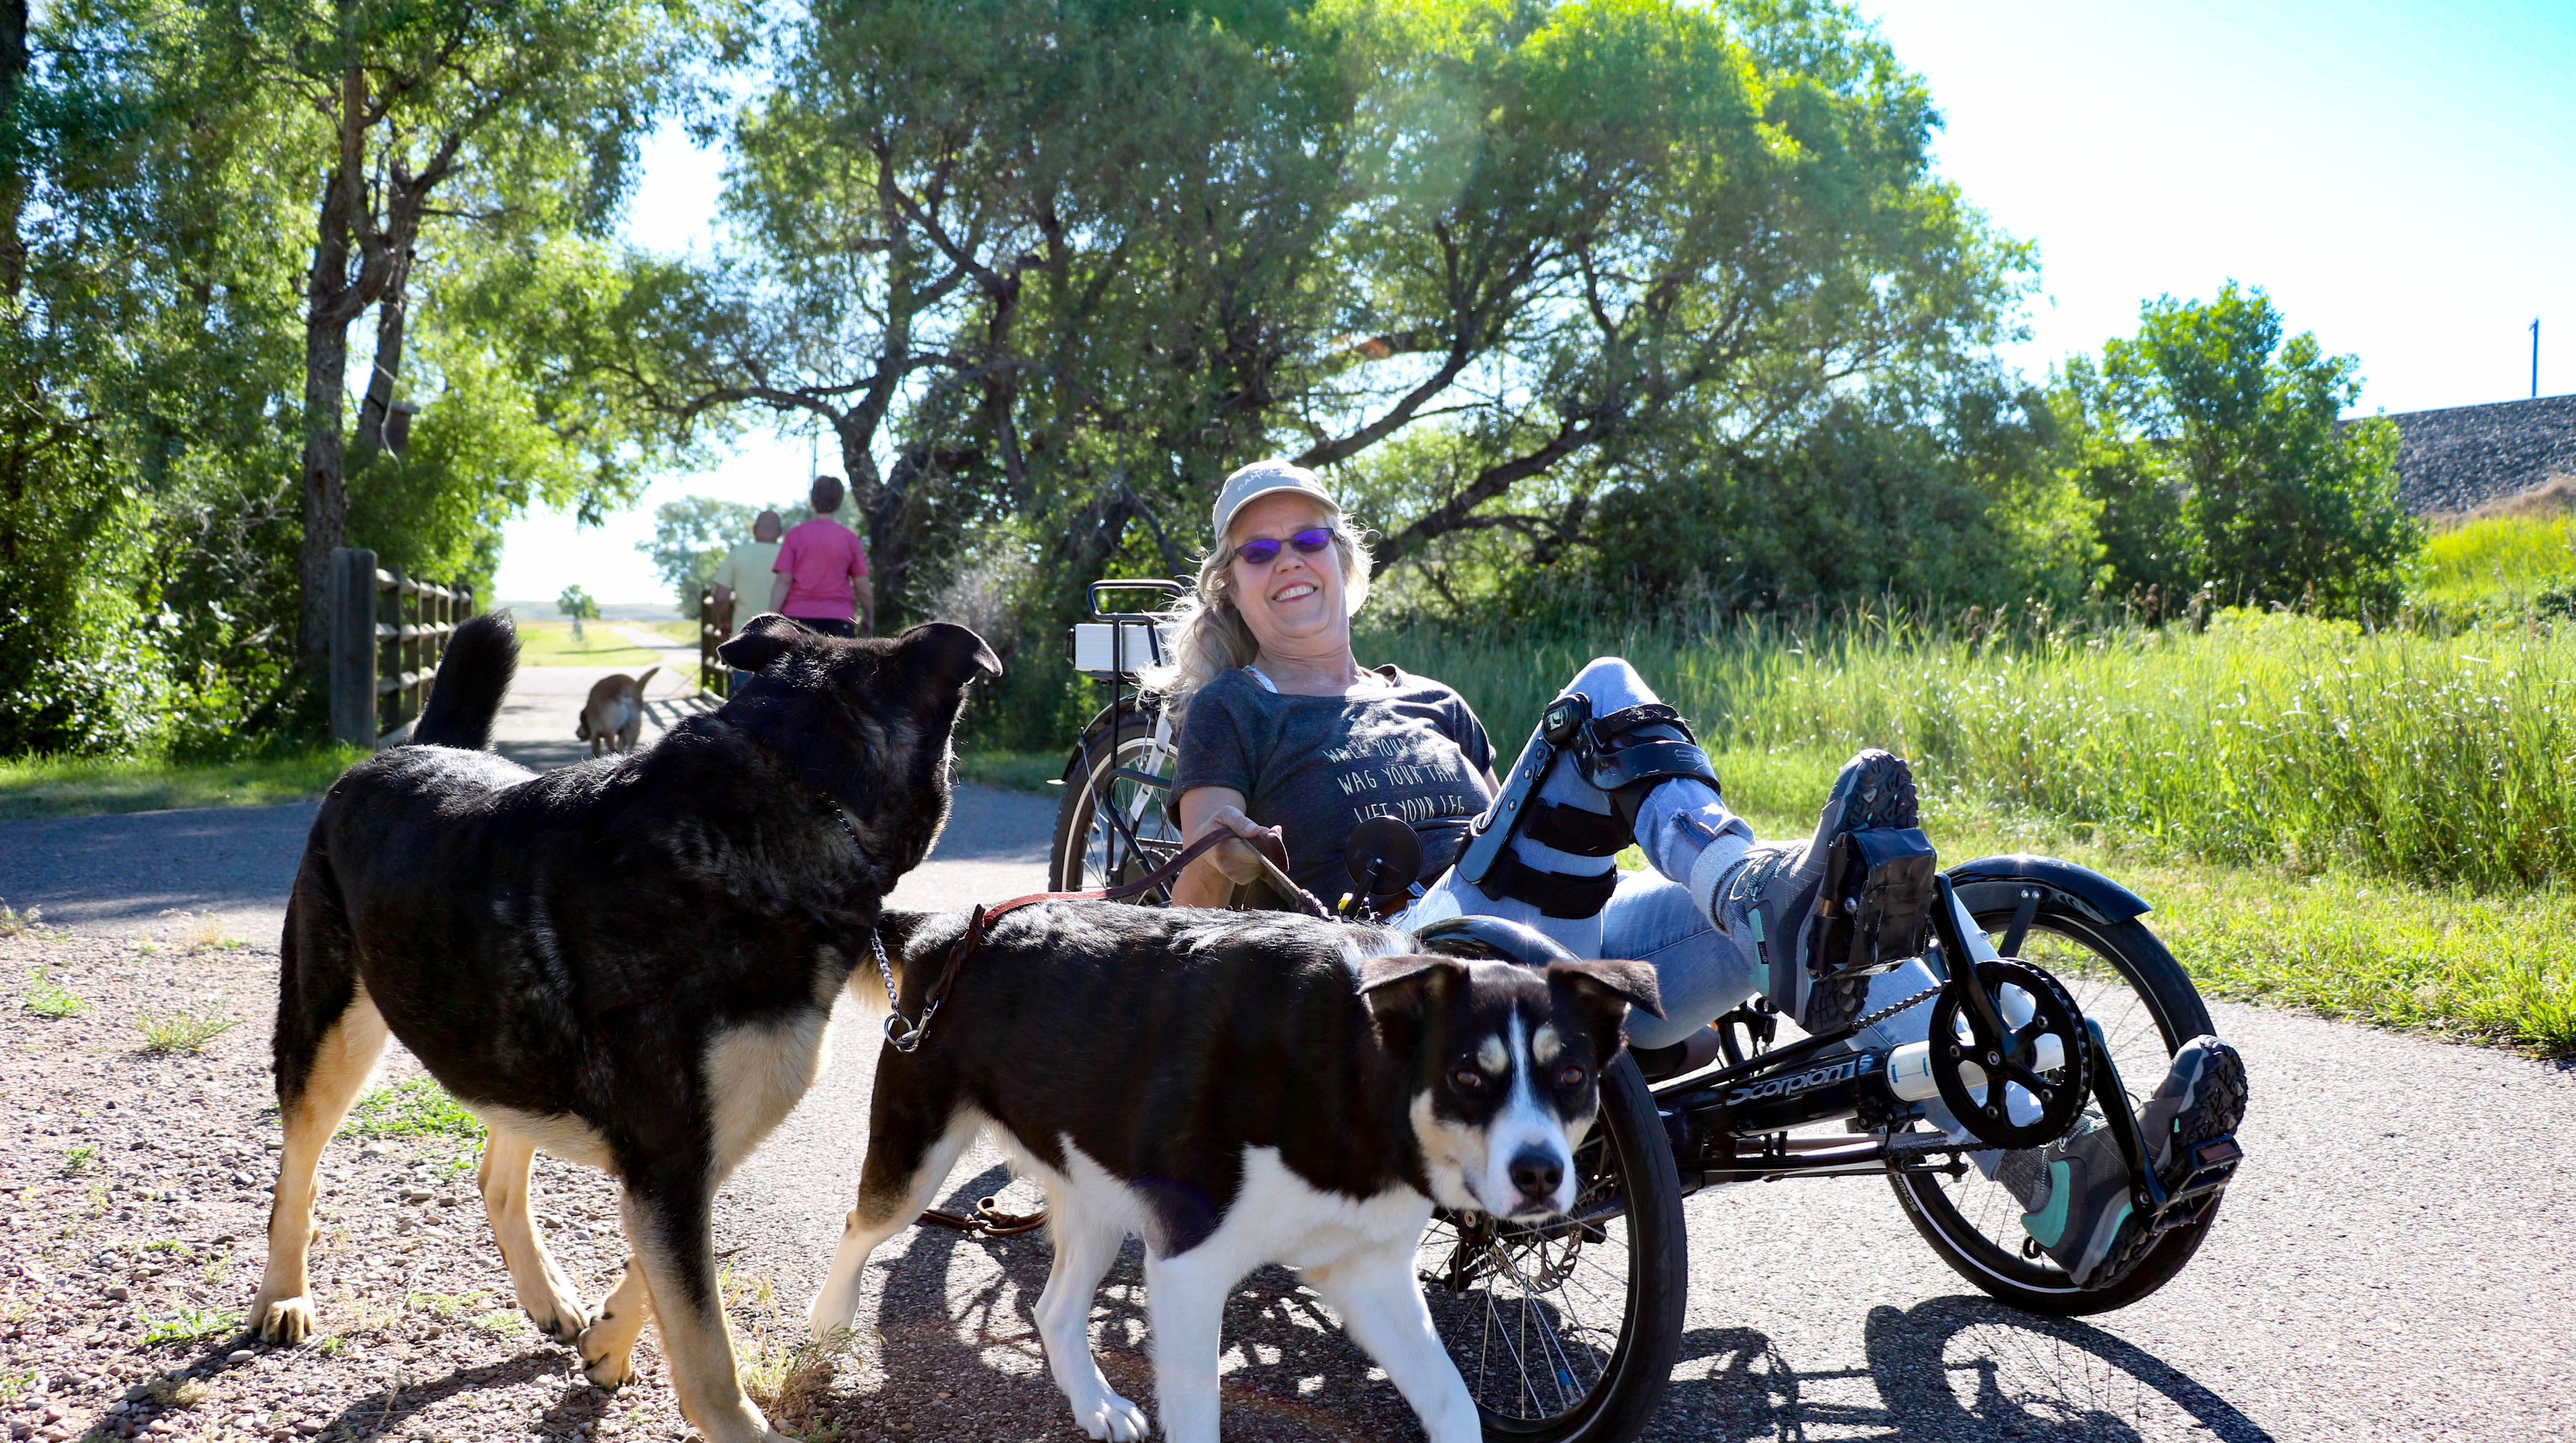 Grayce Holzheimer rides her motorized tricycle, along with her dogs Echo and Sport, on the River's Edge Trail in Great Falls. Great Falls College MSU student Ilaya Payne motorized the tricycle as part of a research project.